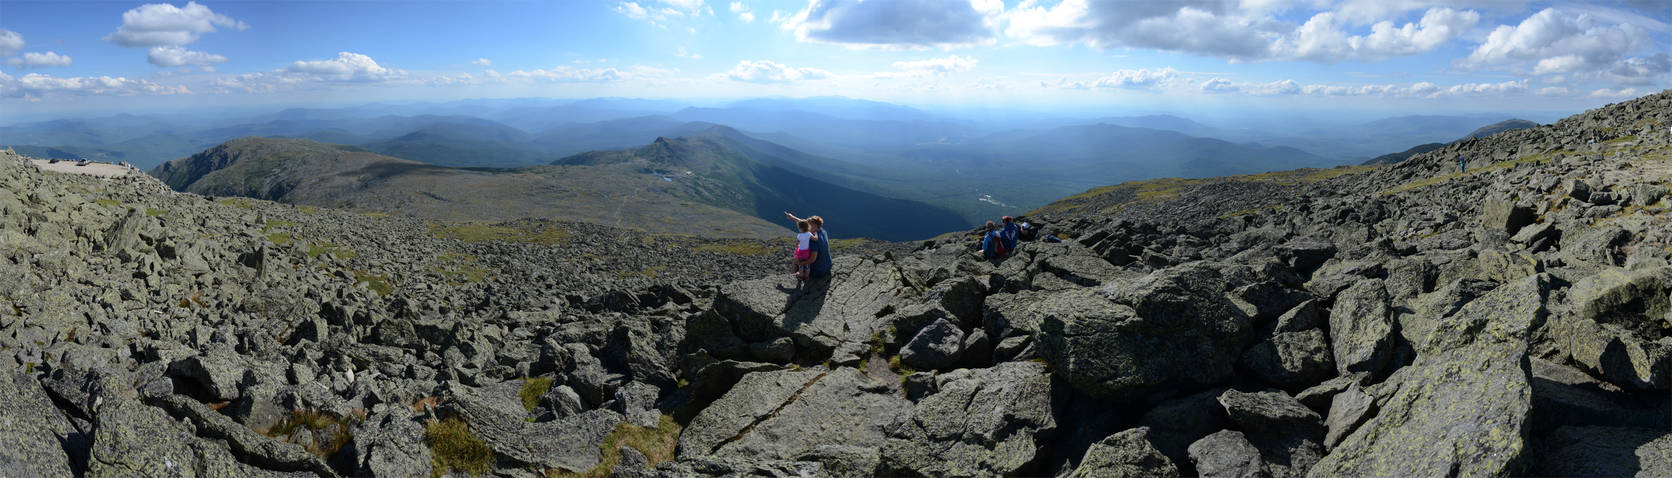 Mount Washington 2012-08-08 4